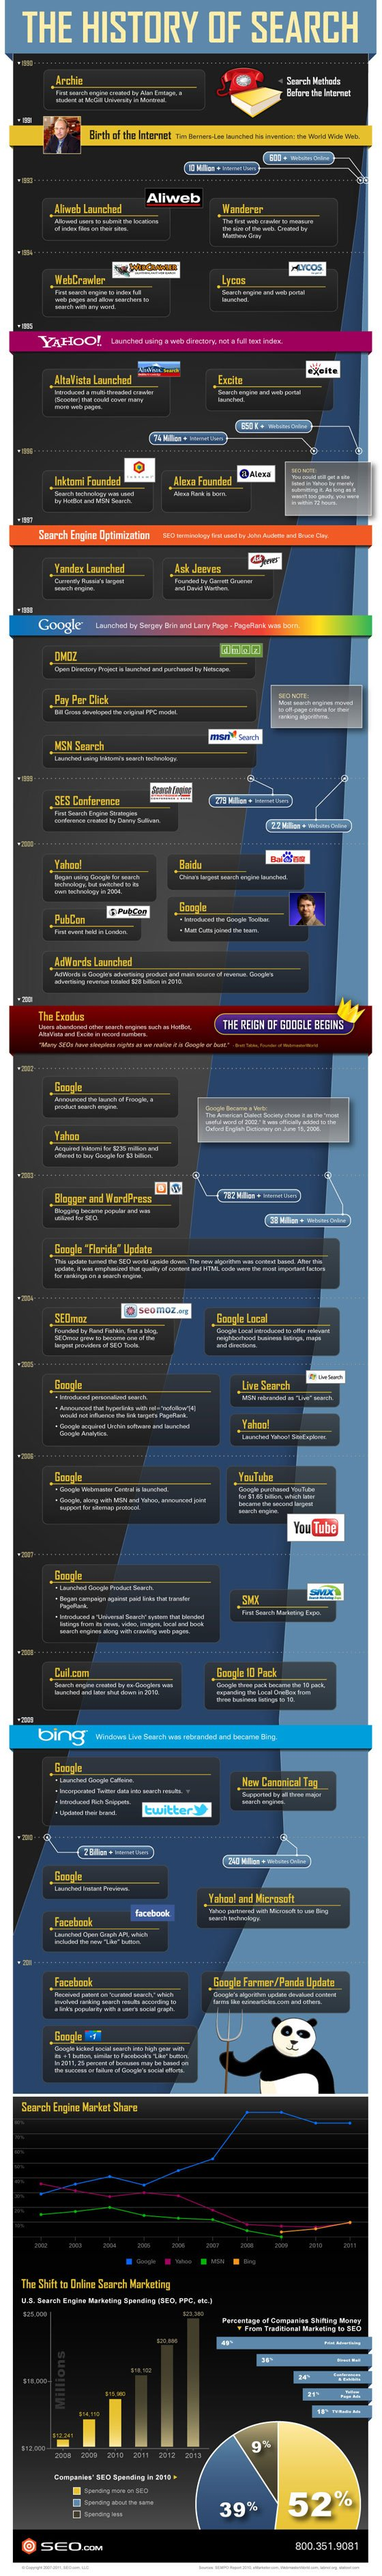 SEOcom_history_of_search_infographic_560